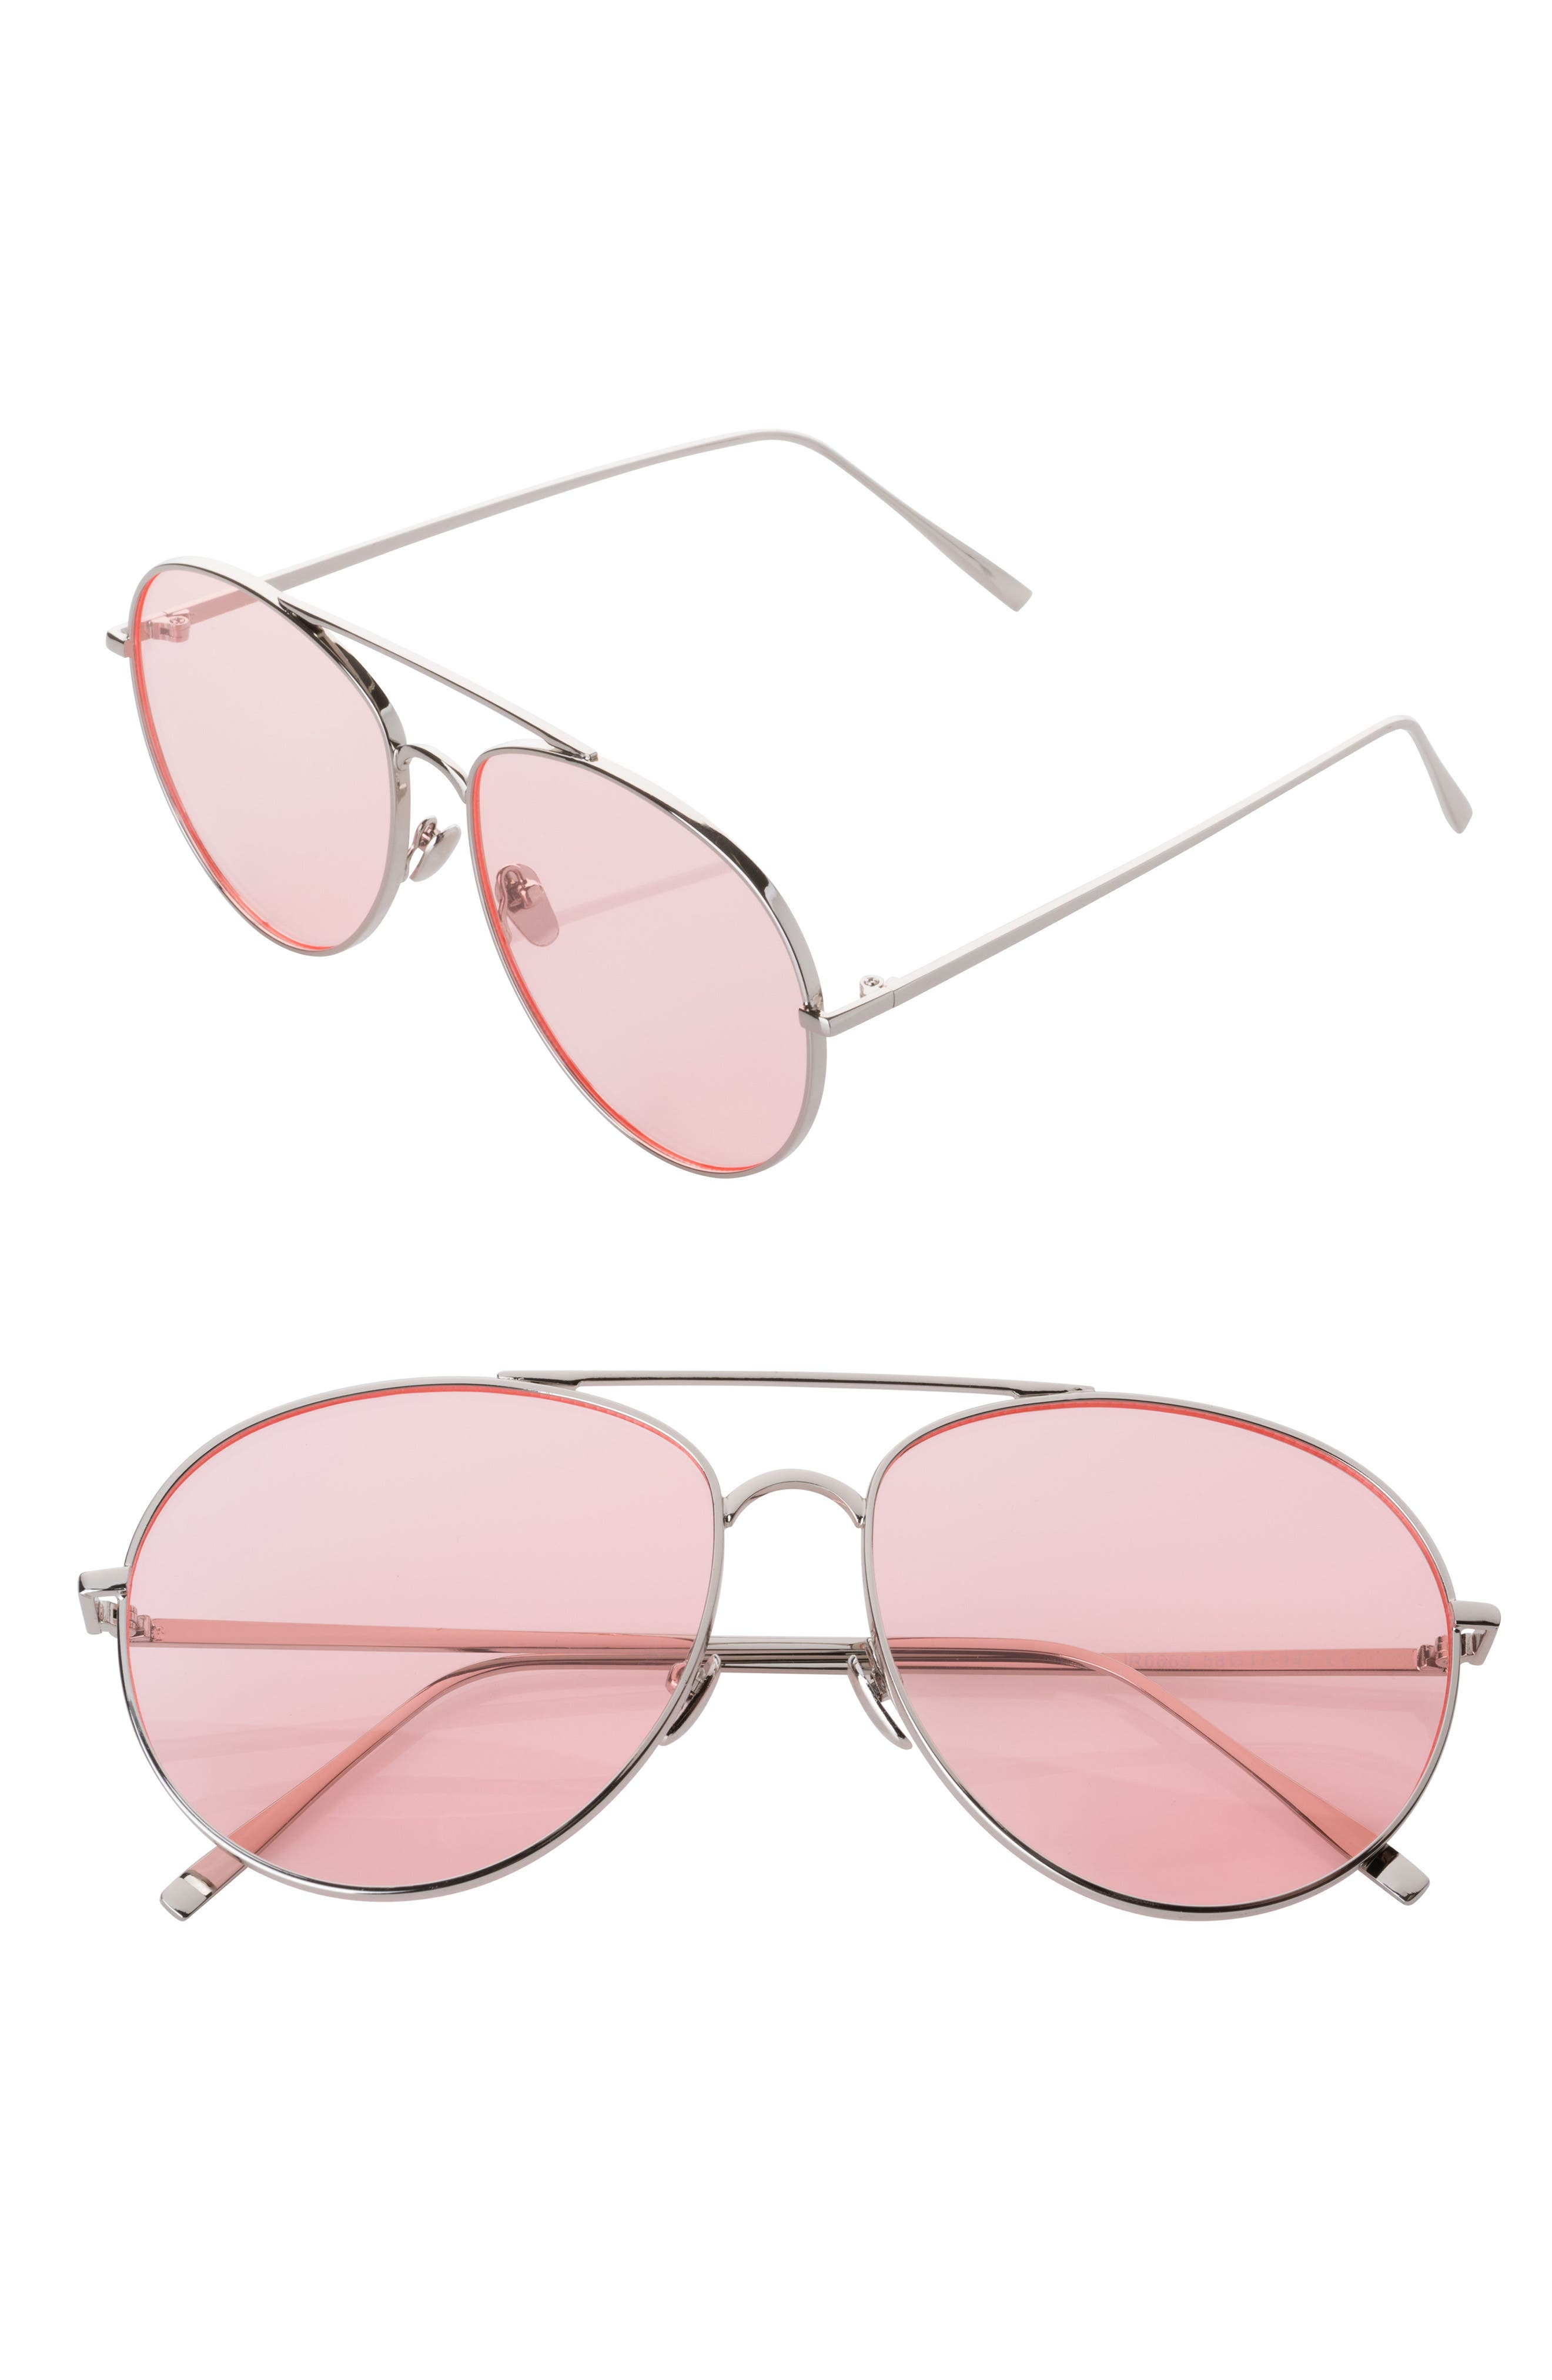 SunnySide LA 58mm Aviator Sunglasses